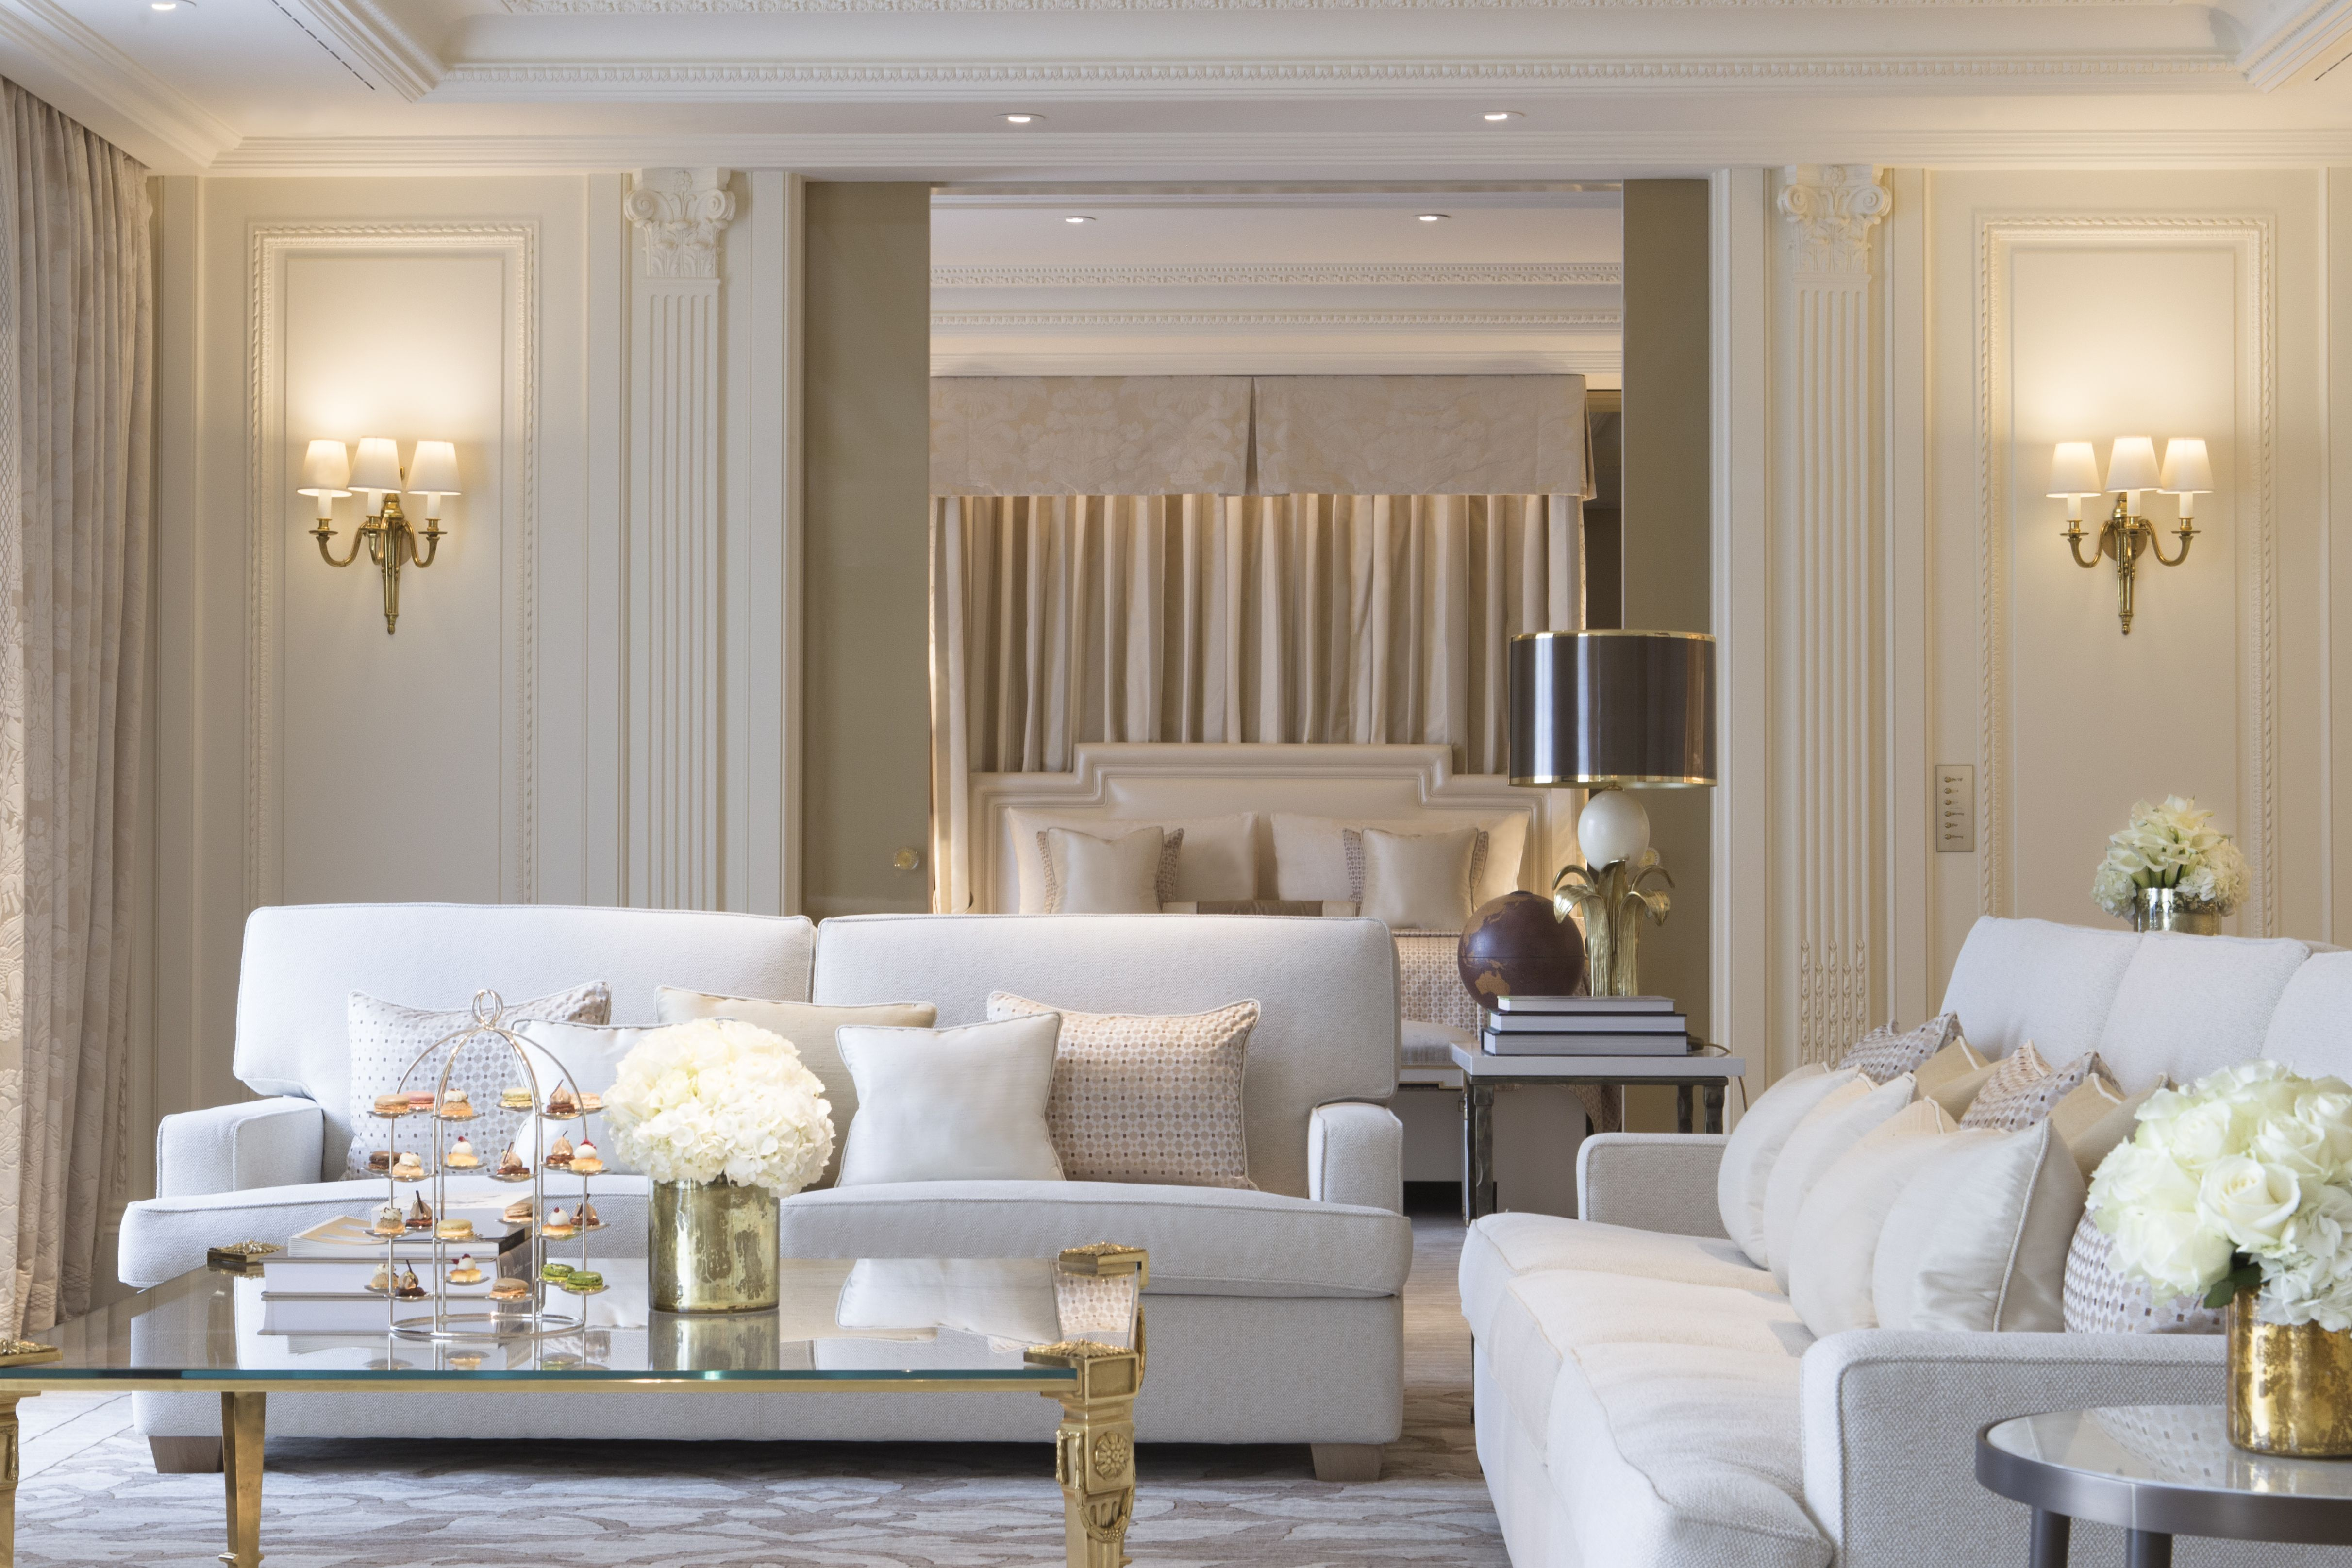 Presidential Suite Close Up With Images Luxury Hotel Room